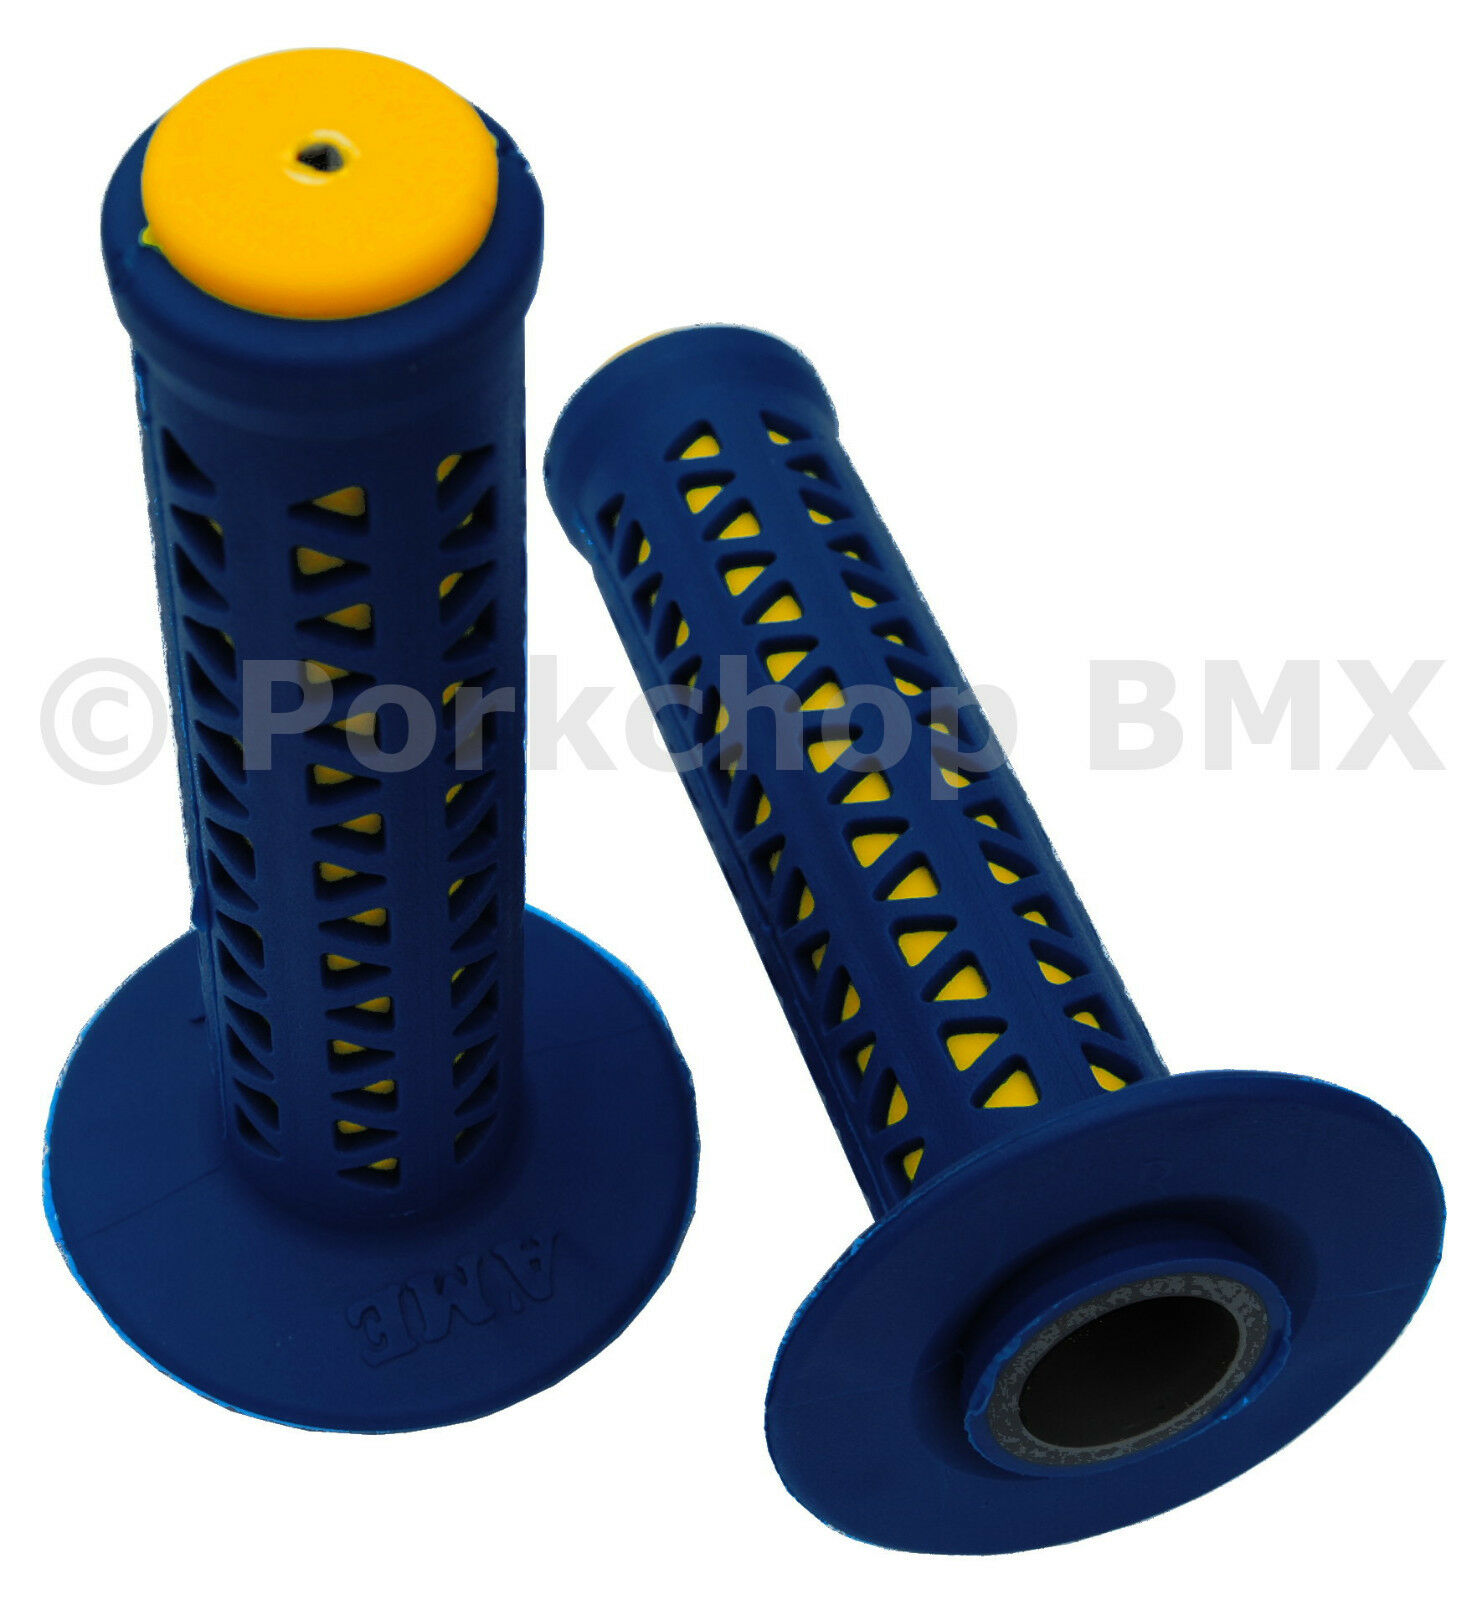 AME old school BMX Unitron bicycle grips - blueeE over YELLOW MADE IN USA NEW